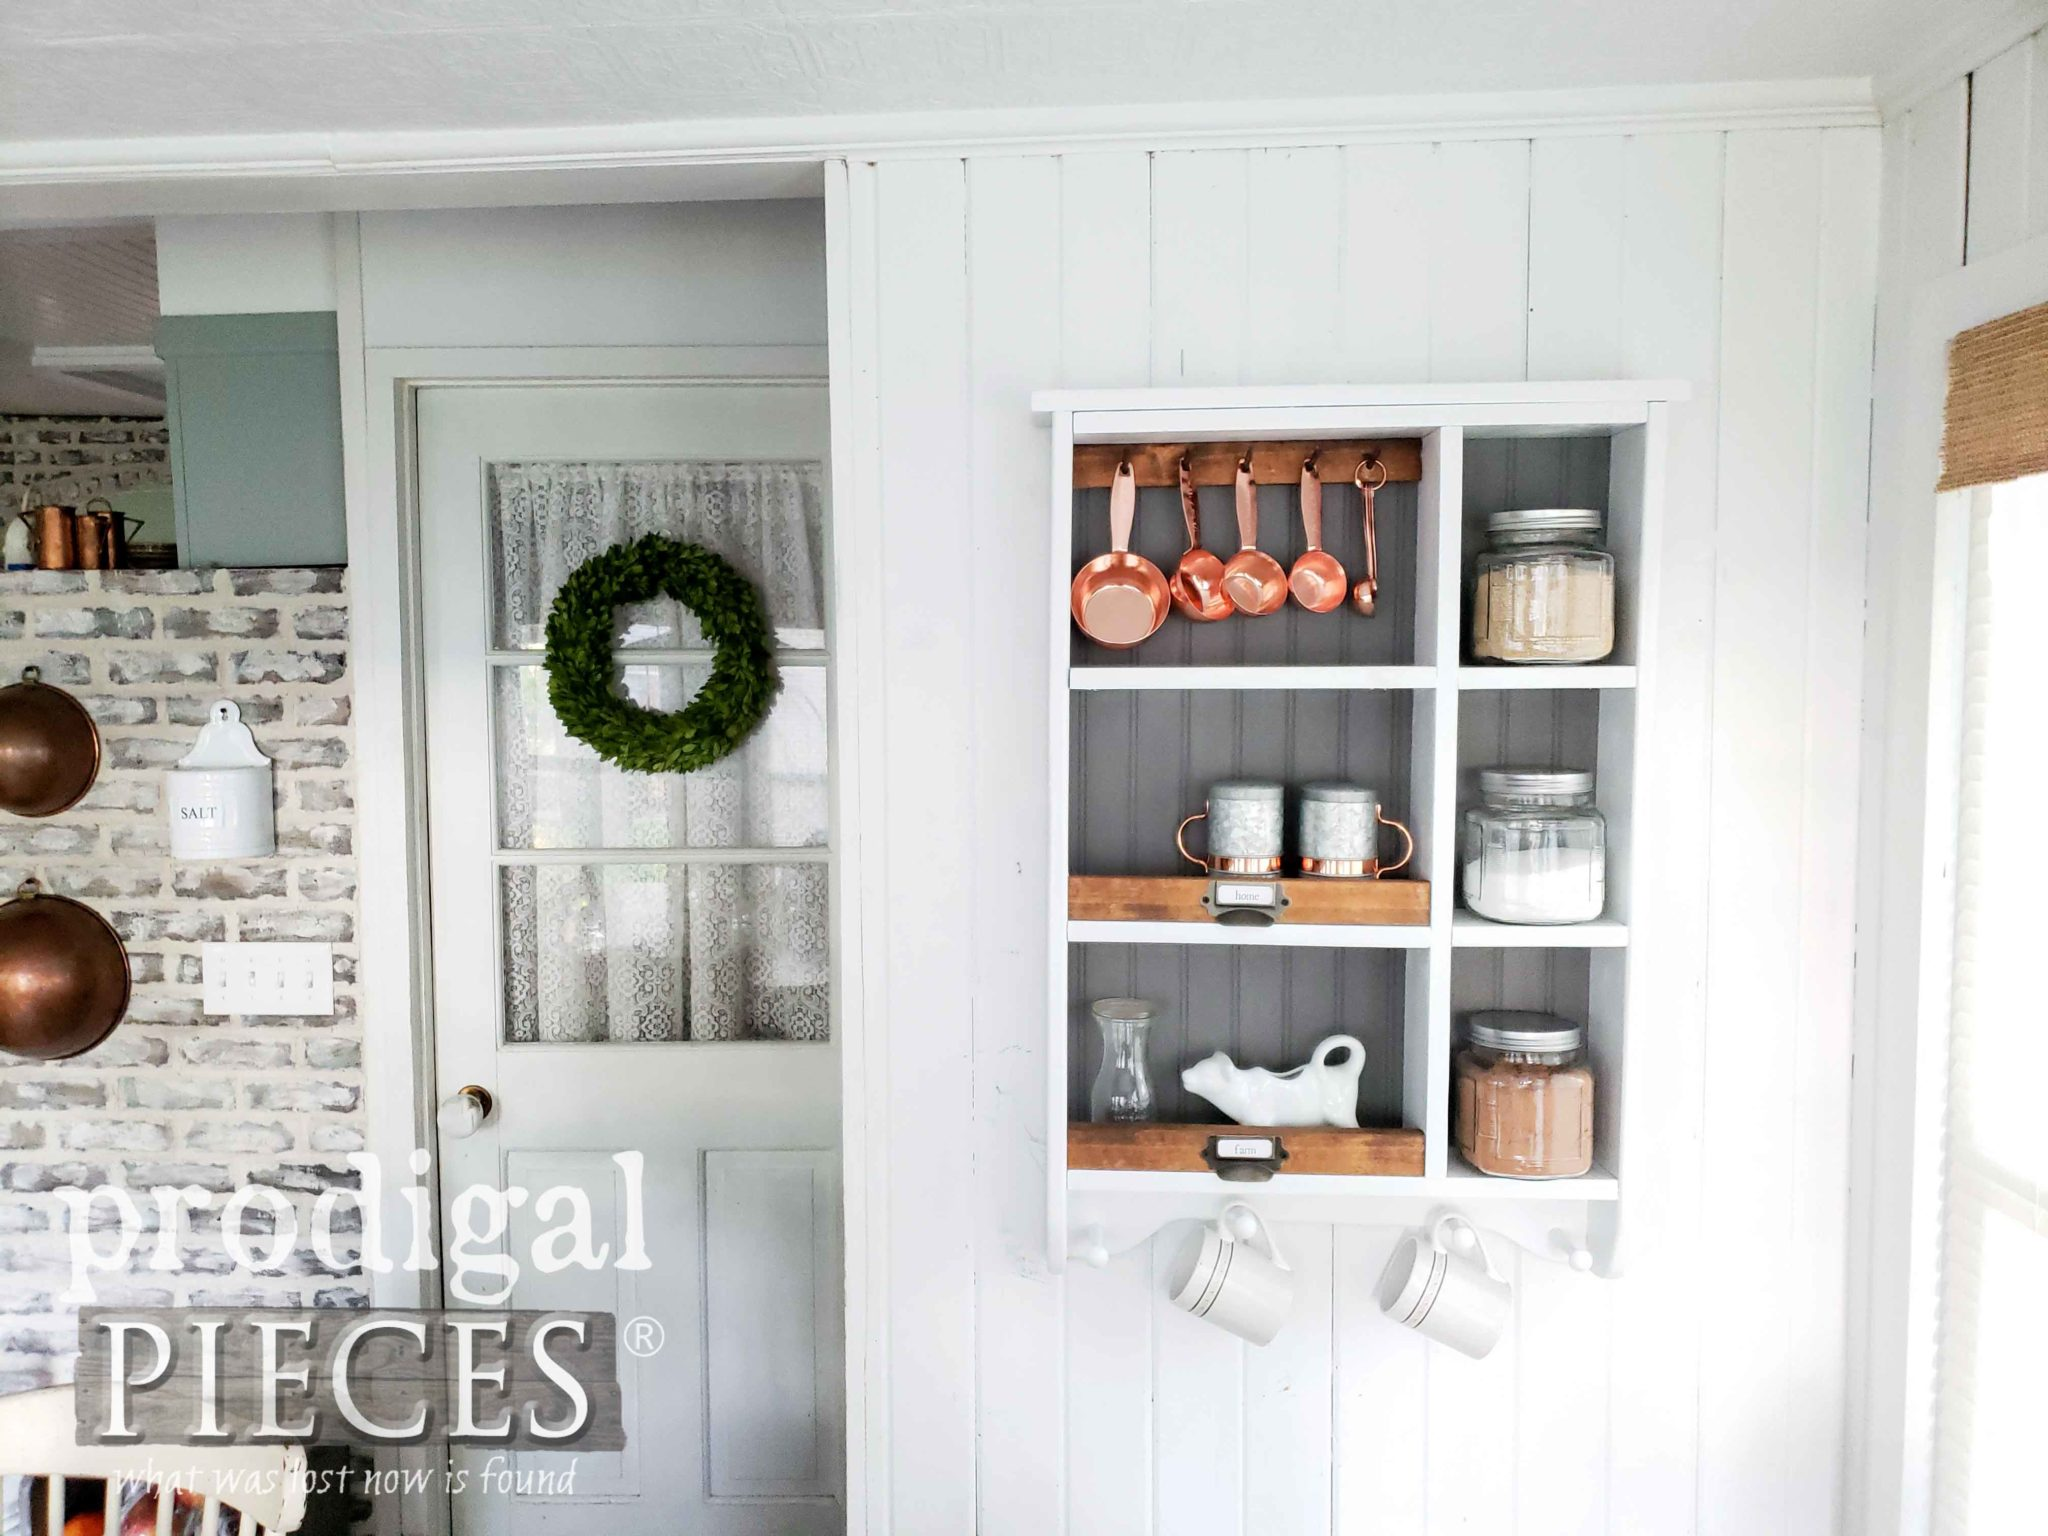 DIY Farmhouse Kitchen Storage Cubby from a Thrifted Find by Larissa of Prodigal Pieces | prodigalpieces.com